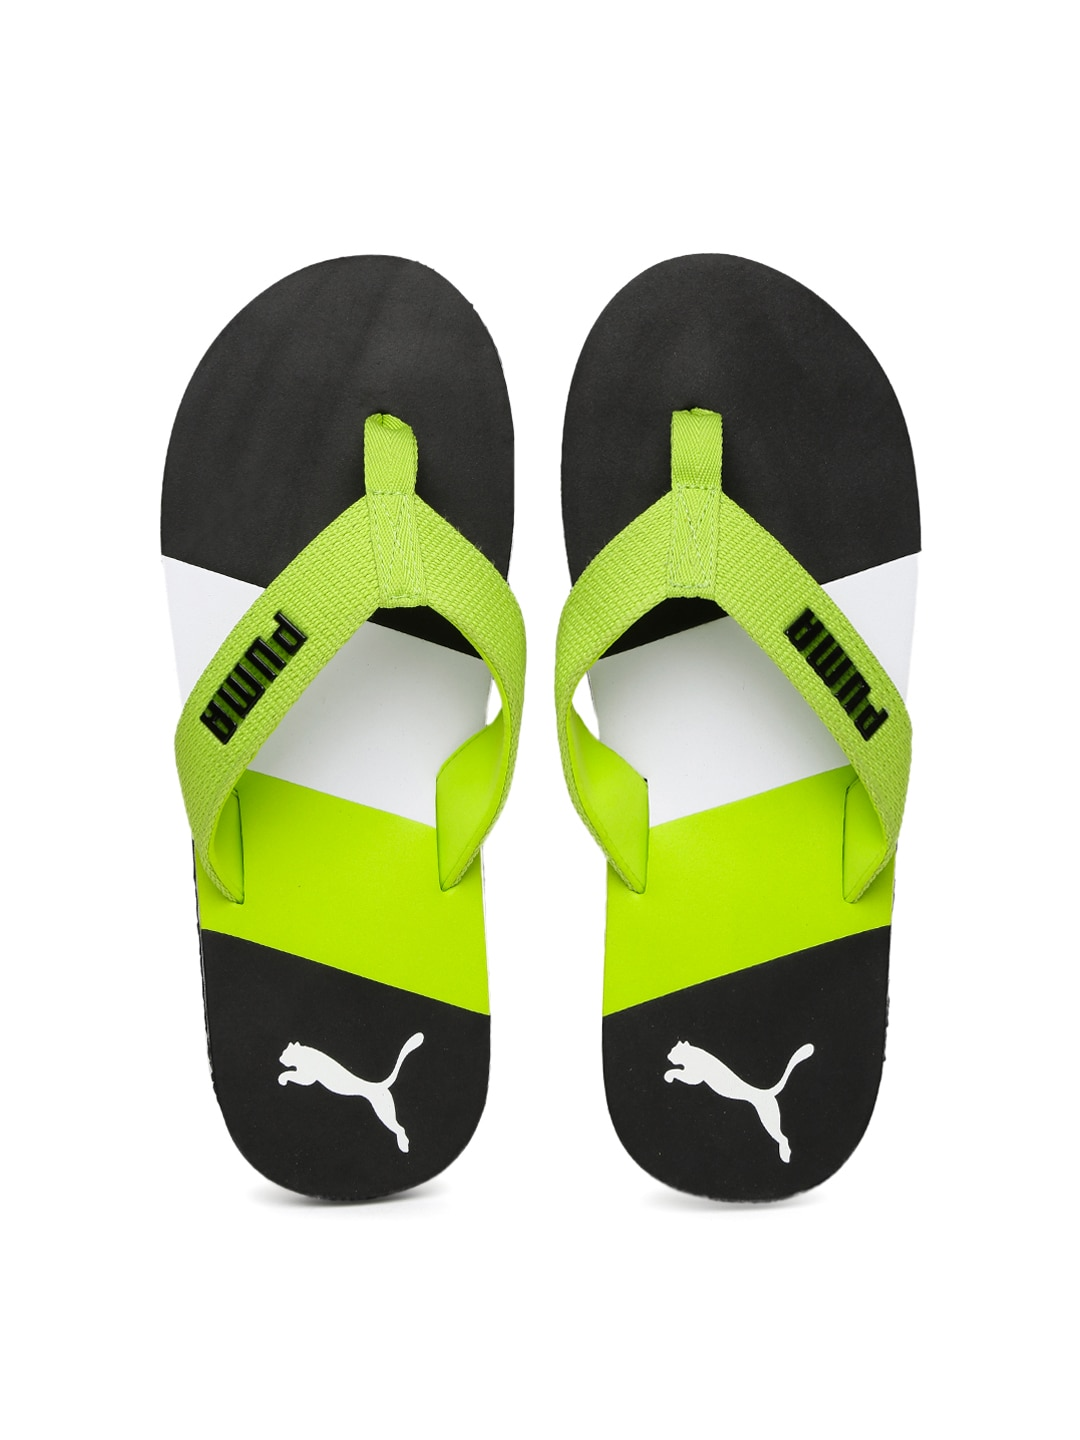 277a34e74987 Puma Green Flip Flops - Buy Puma Green Flip Flops online in India